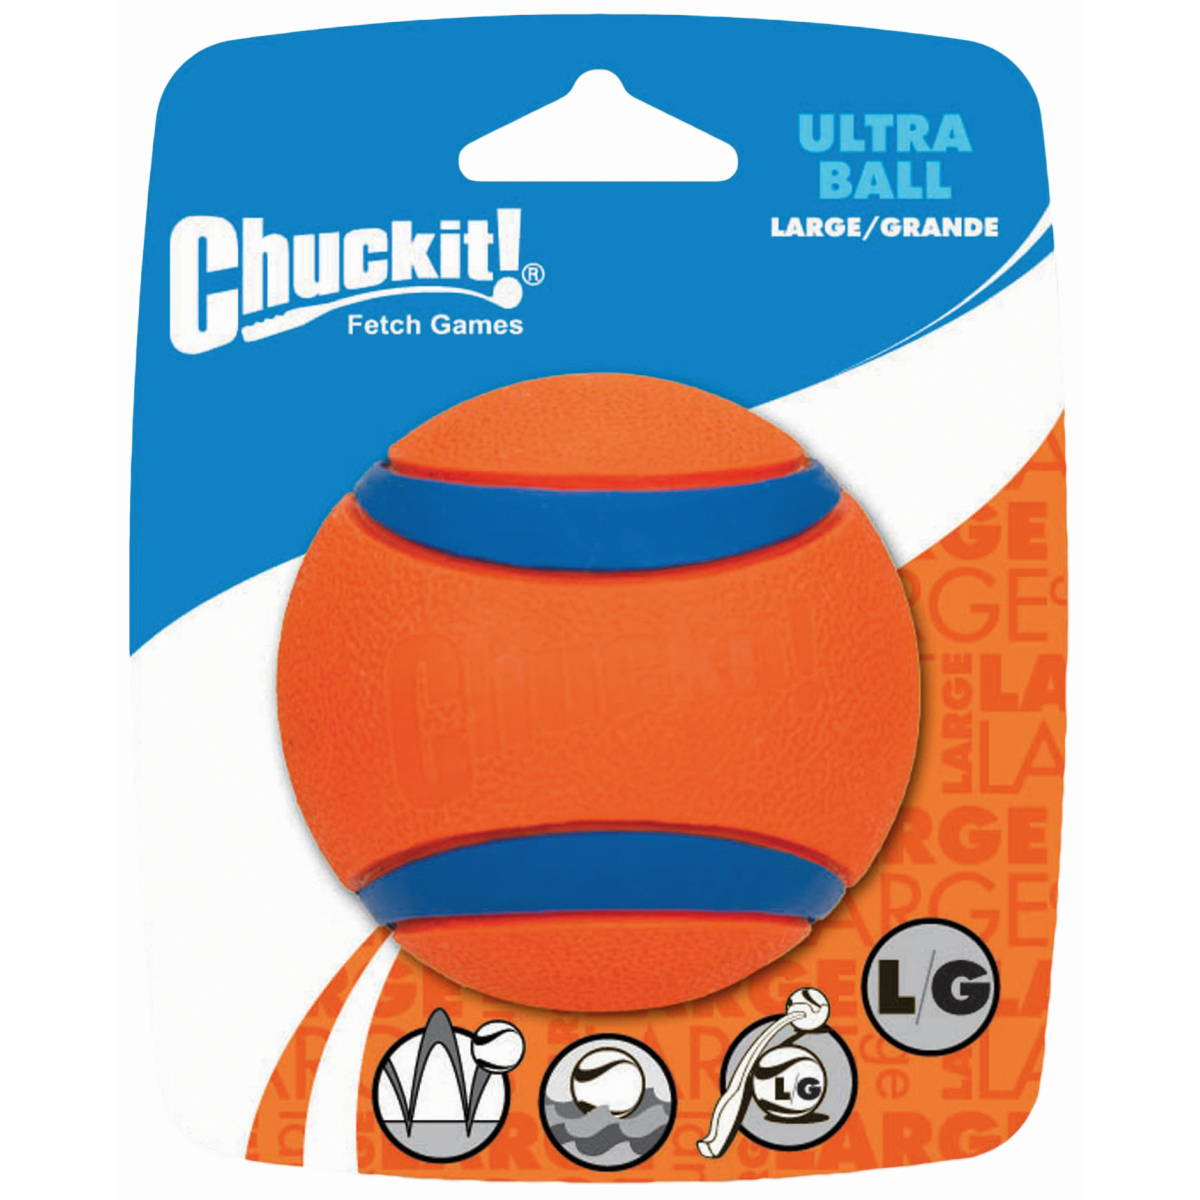 CI ULTRA BALL LARGE 1-PACK 00001